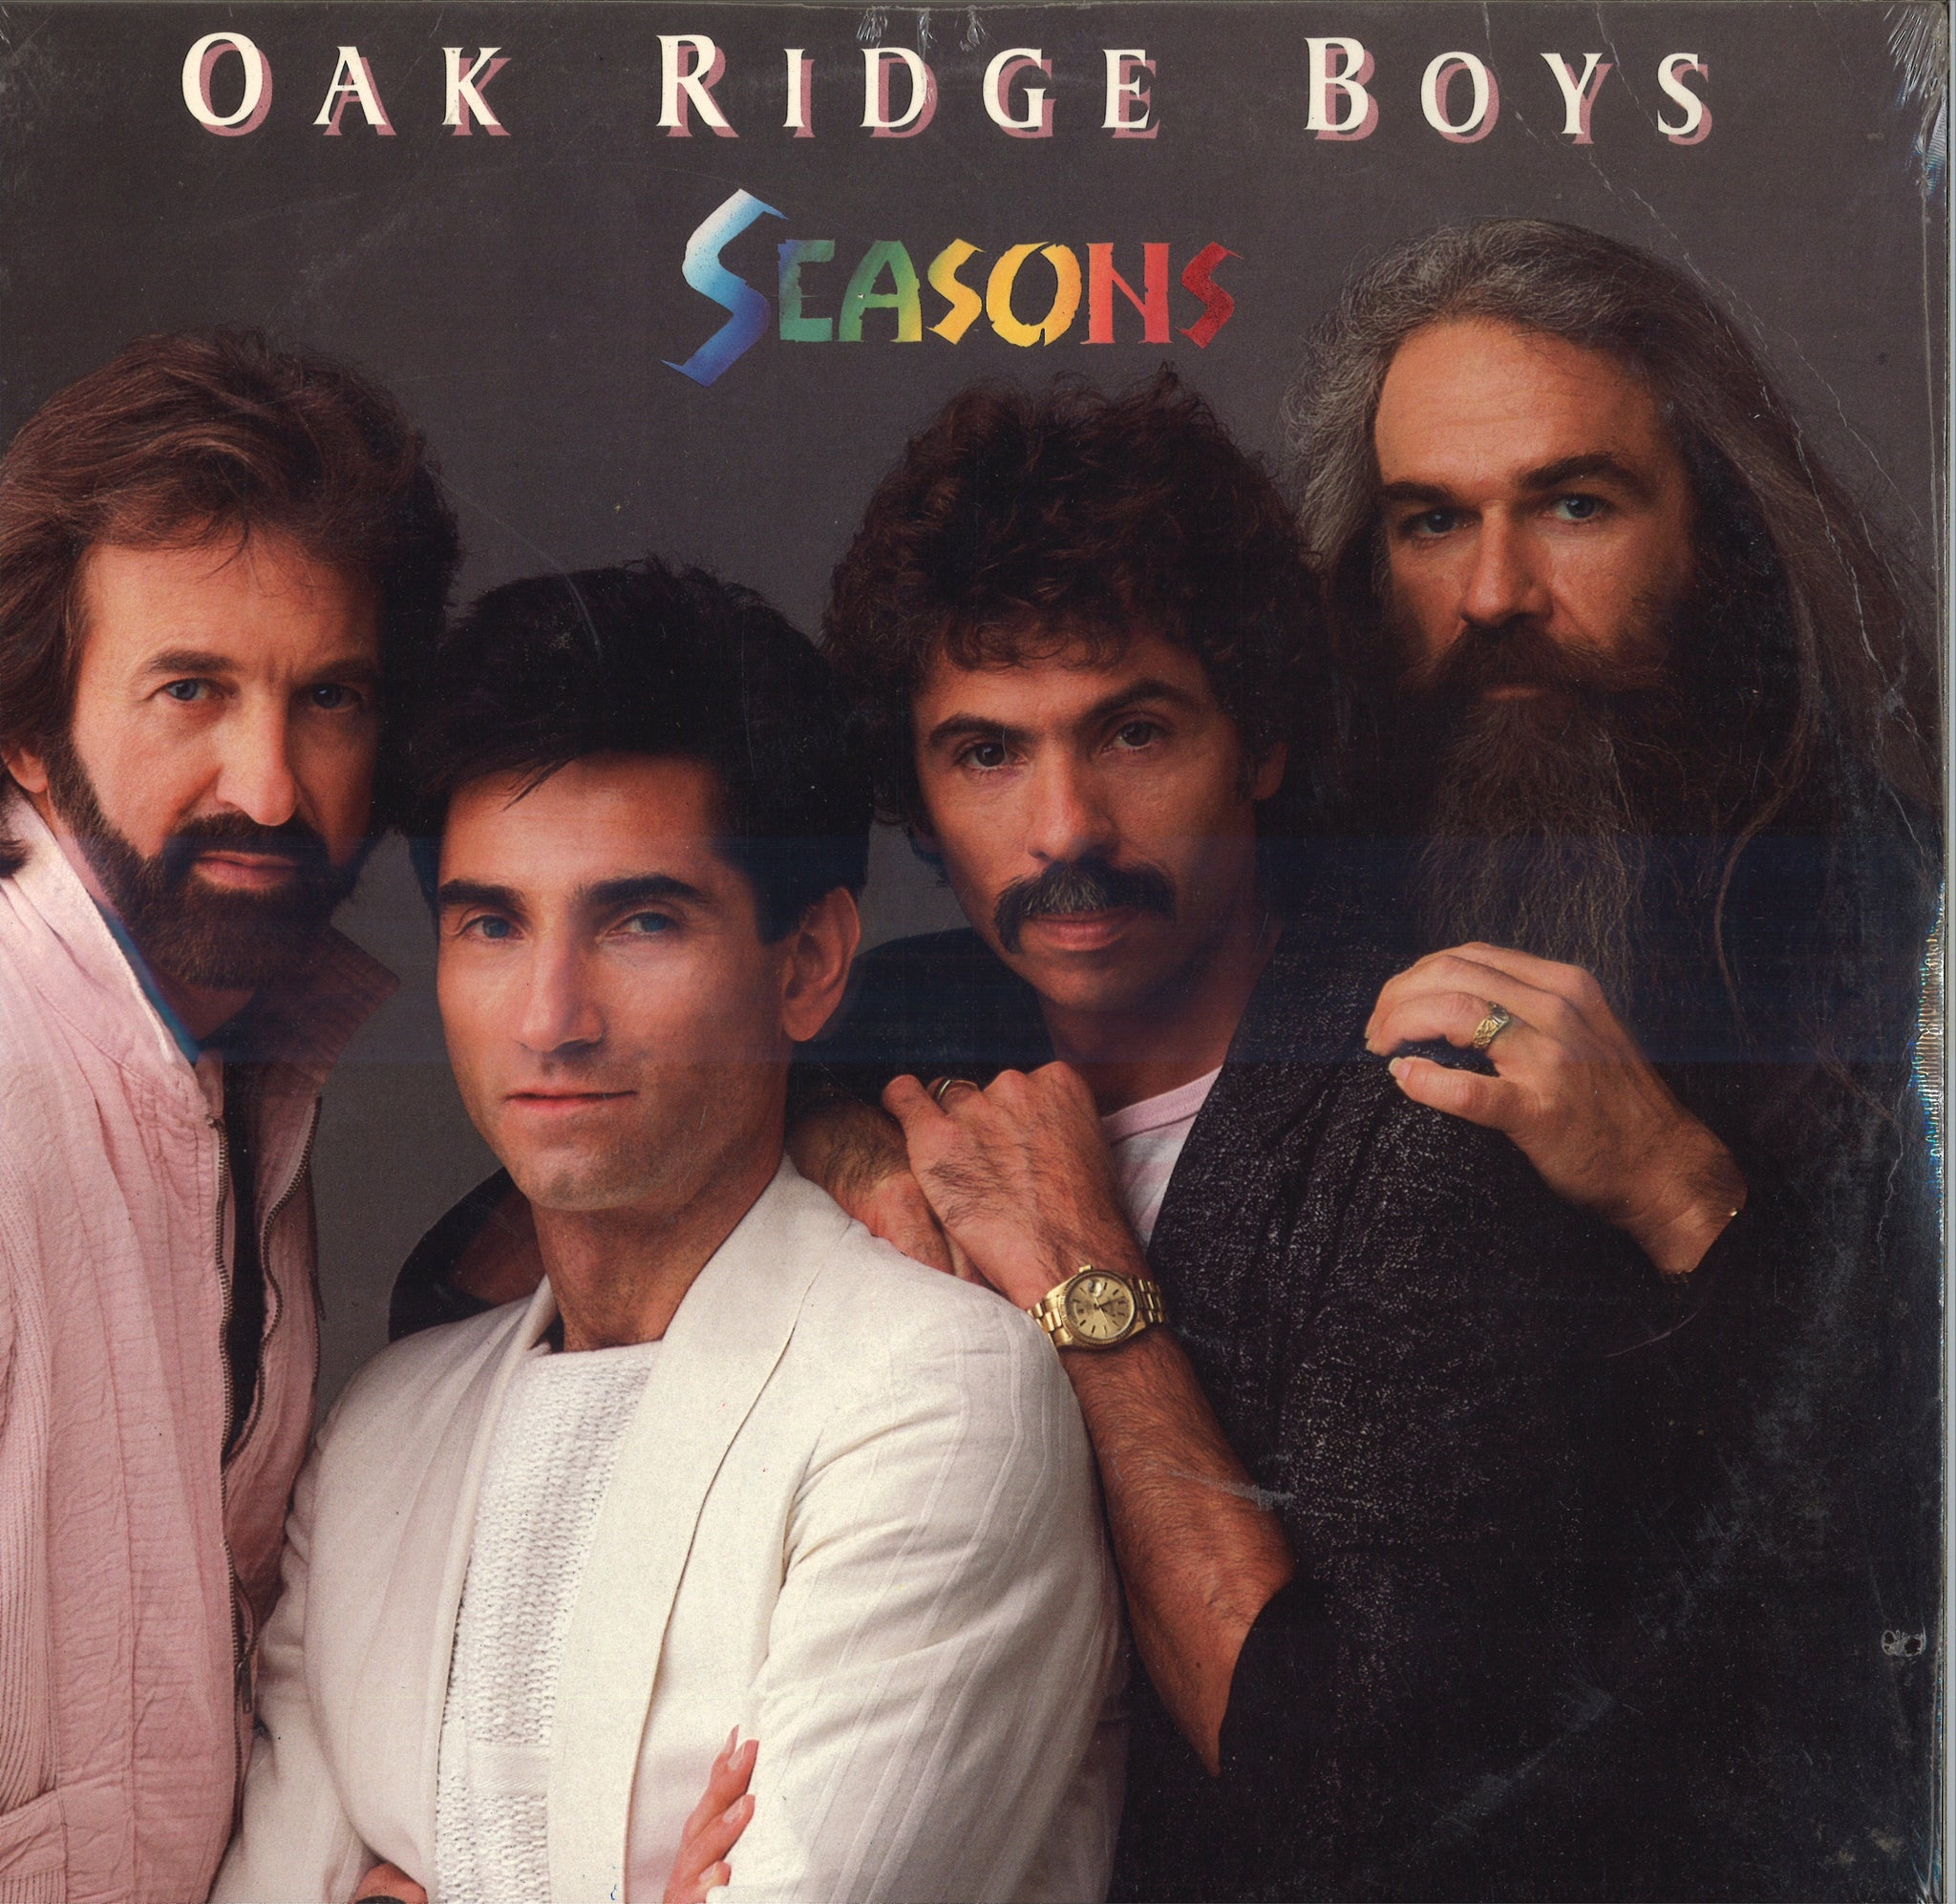 Oak Ridge Boys Seasons